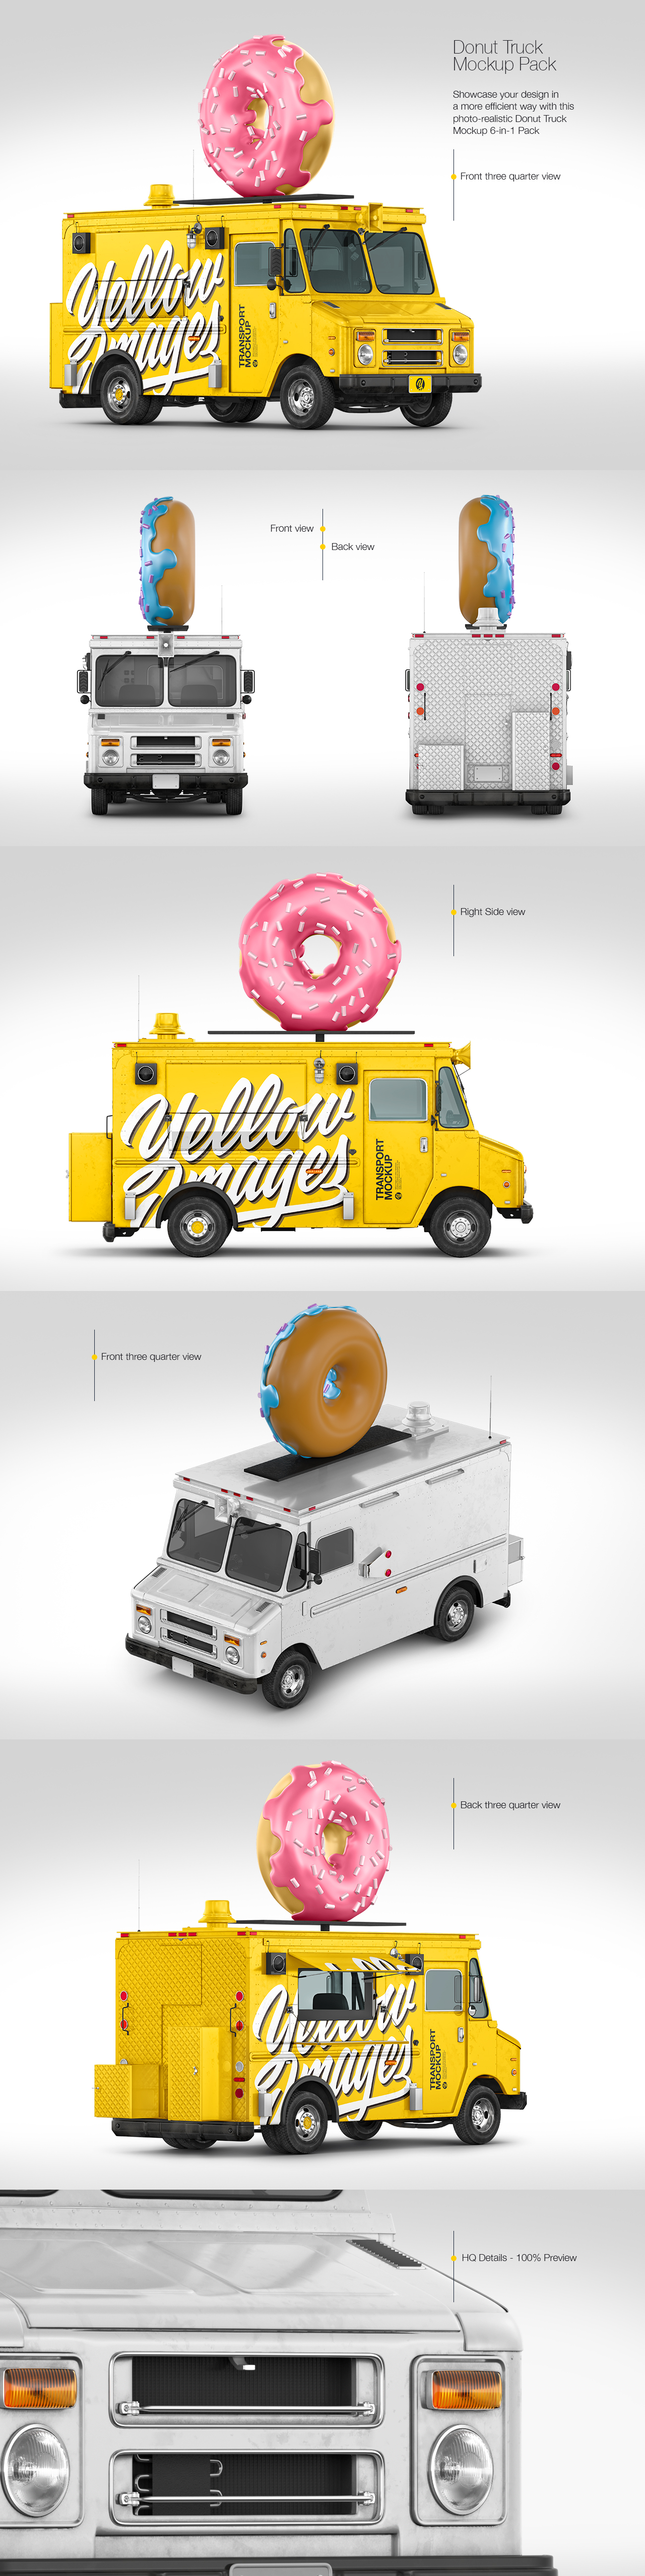 Foodtruck with Donut Mockup Pack